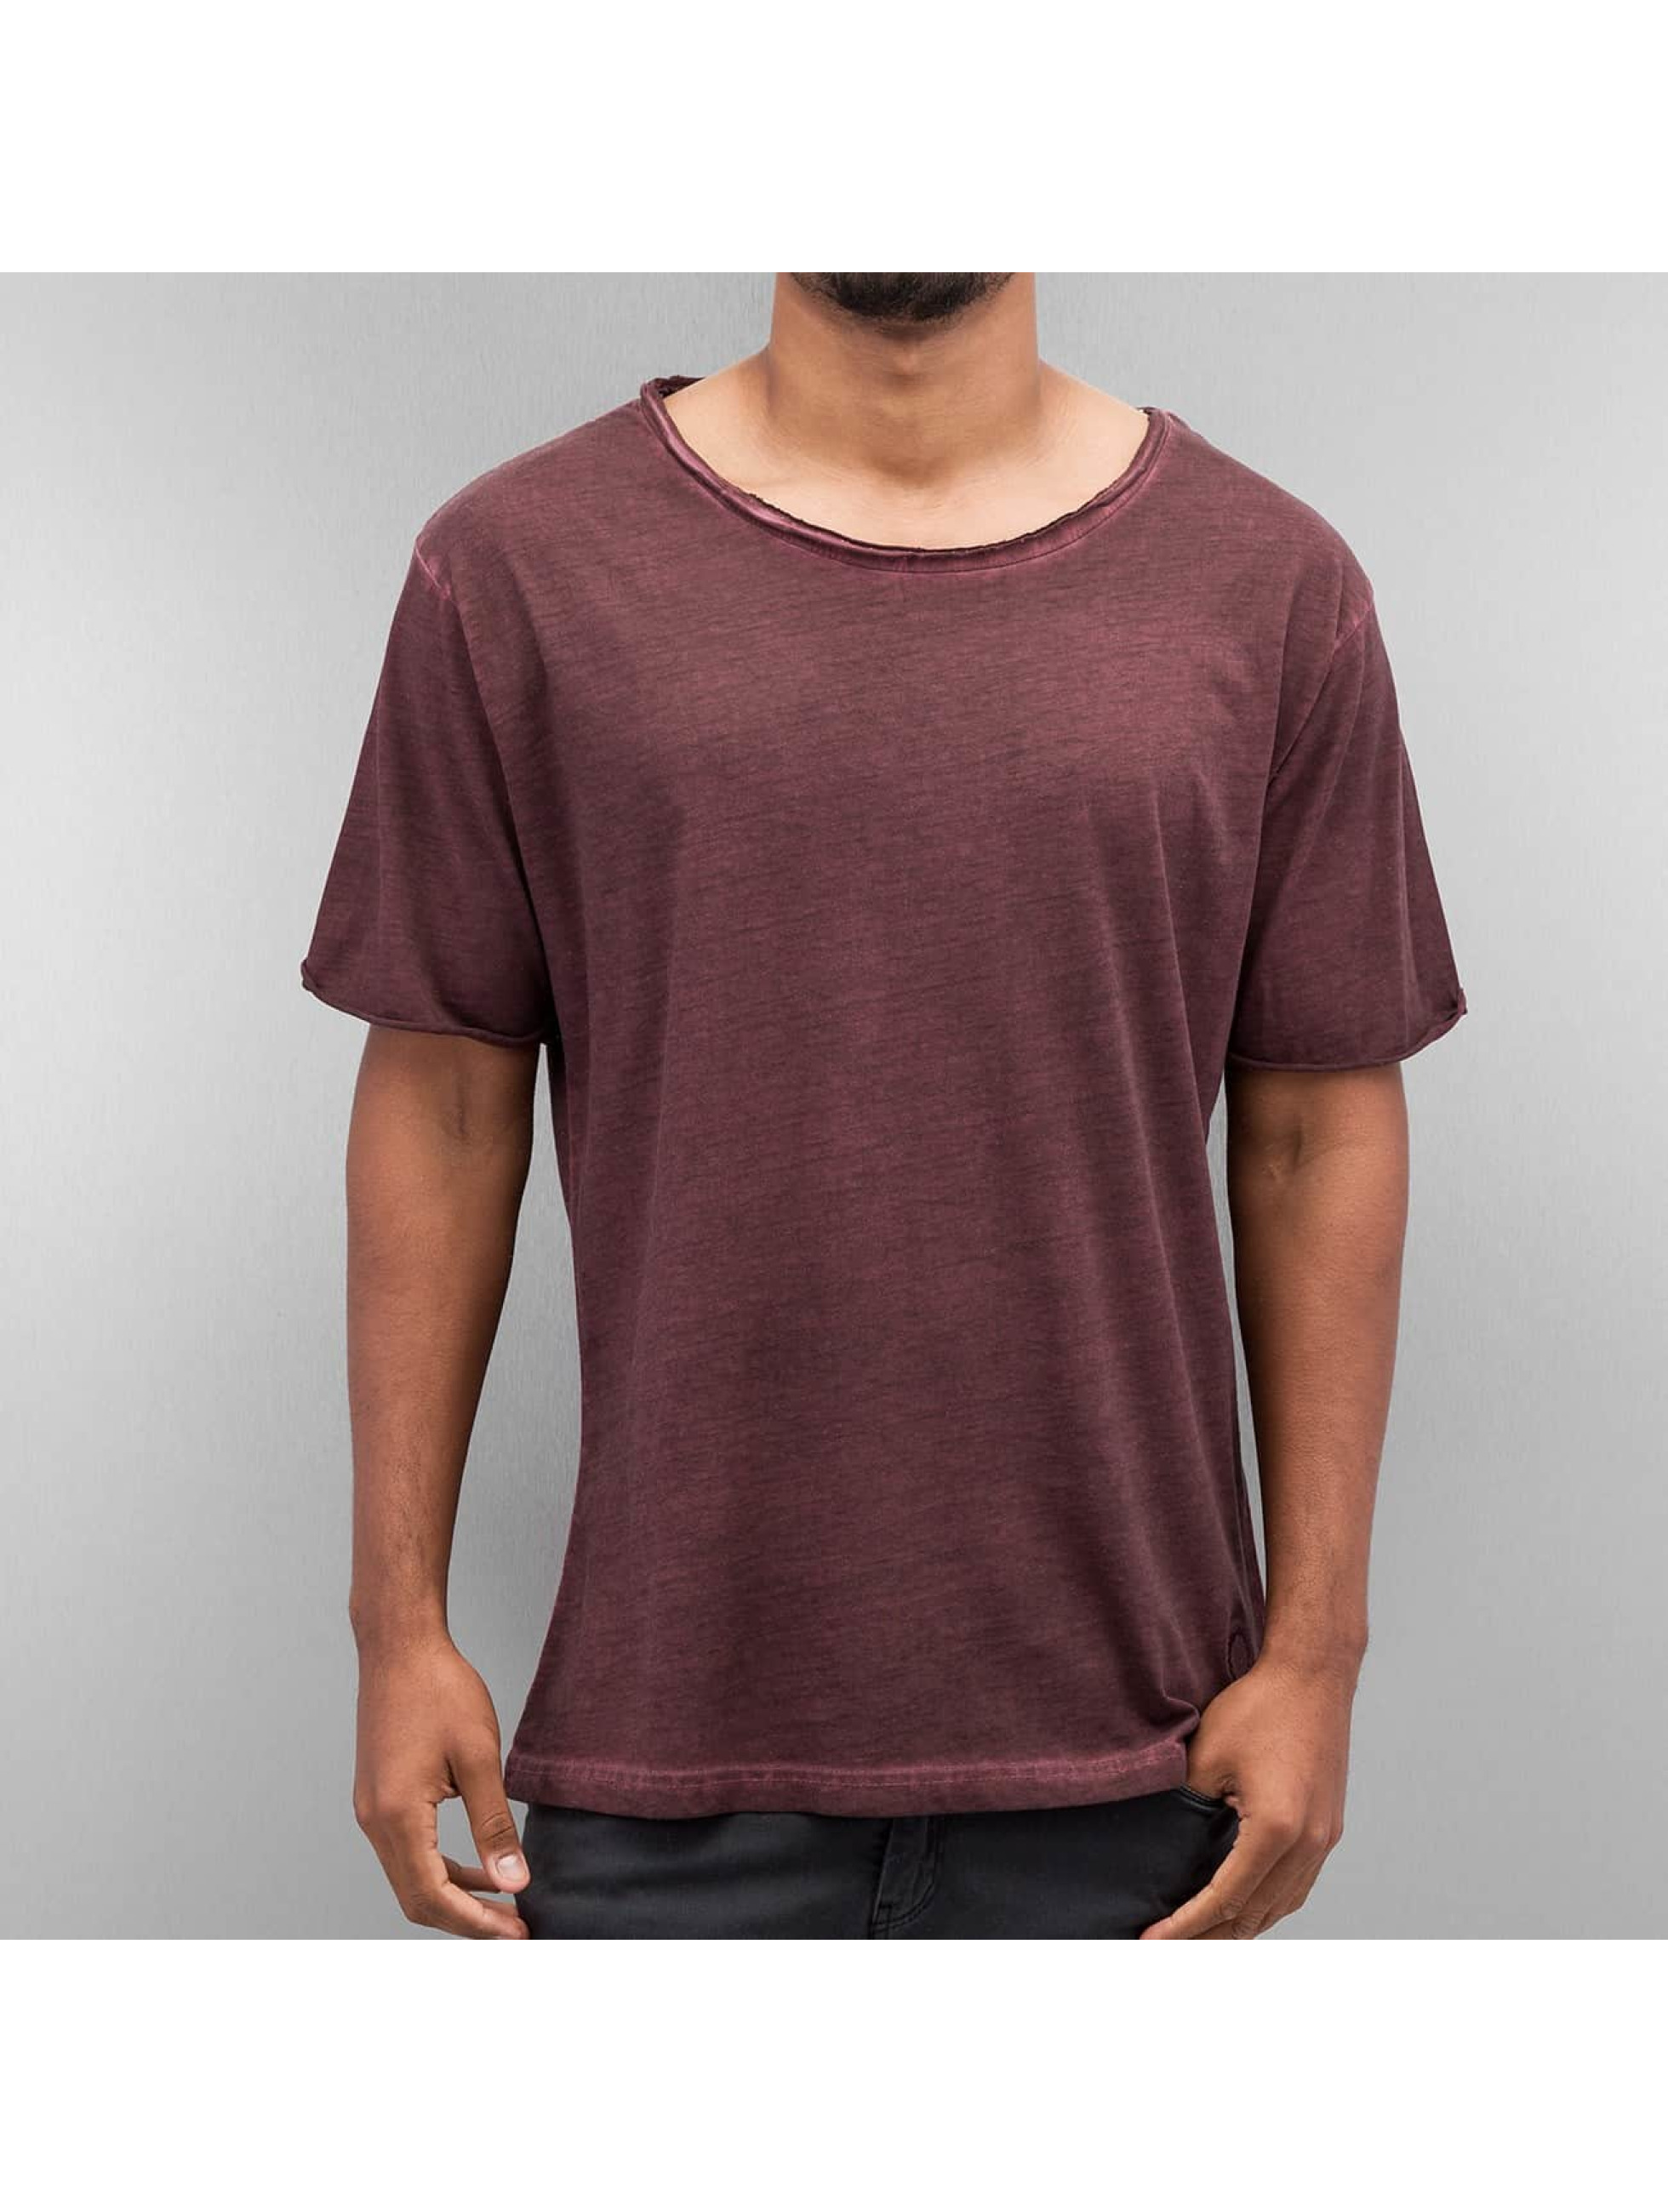 Yezz Männer T-Shirt Dyed in rot